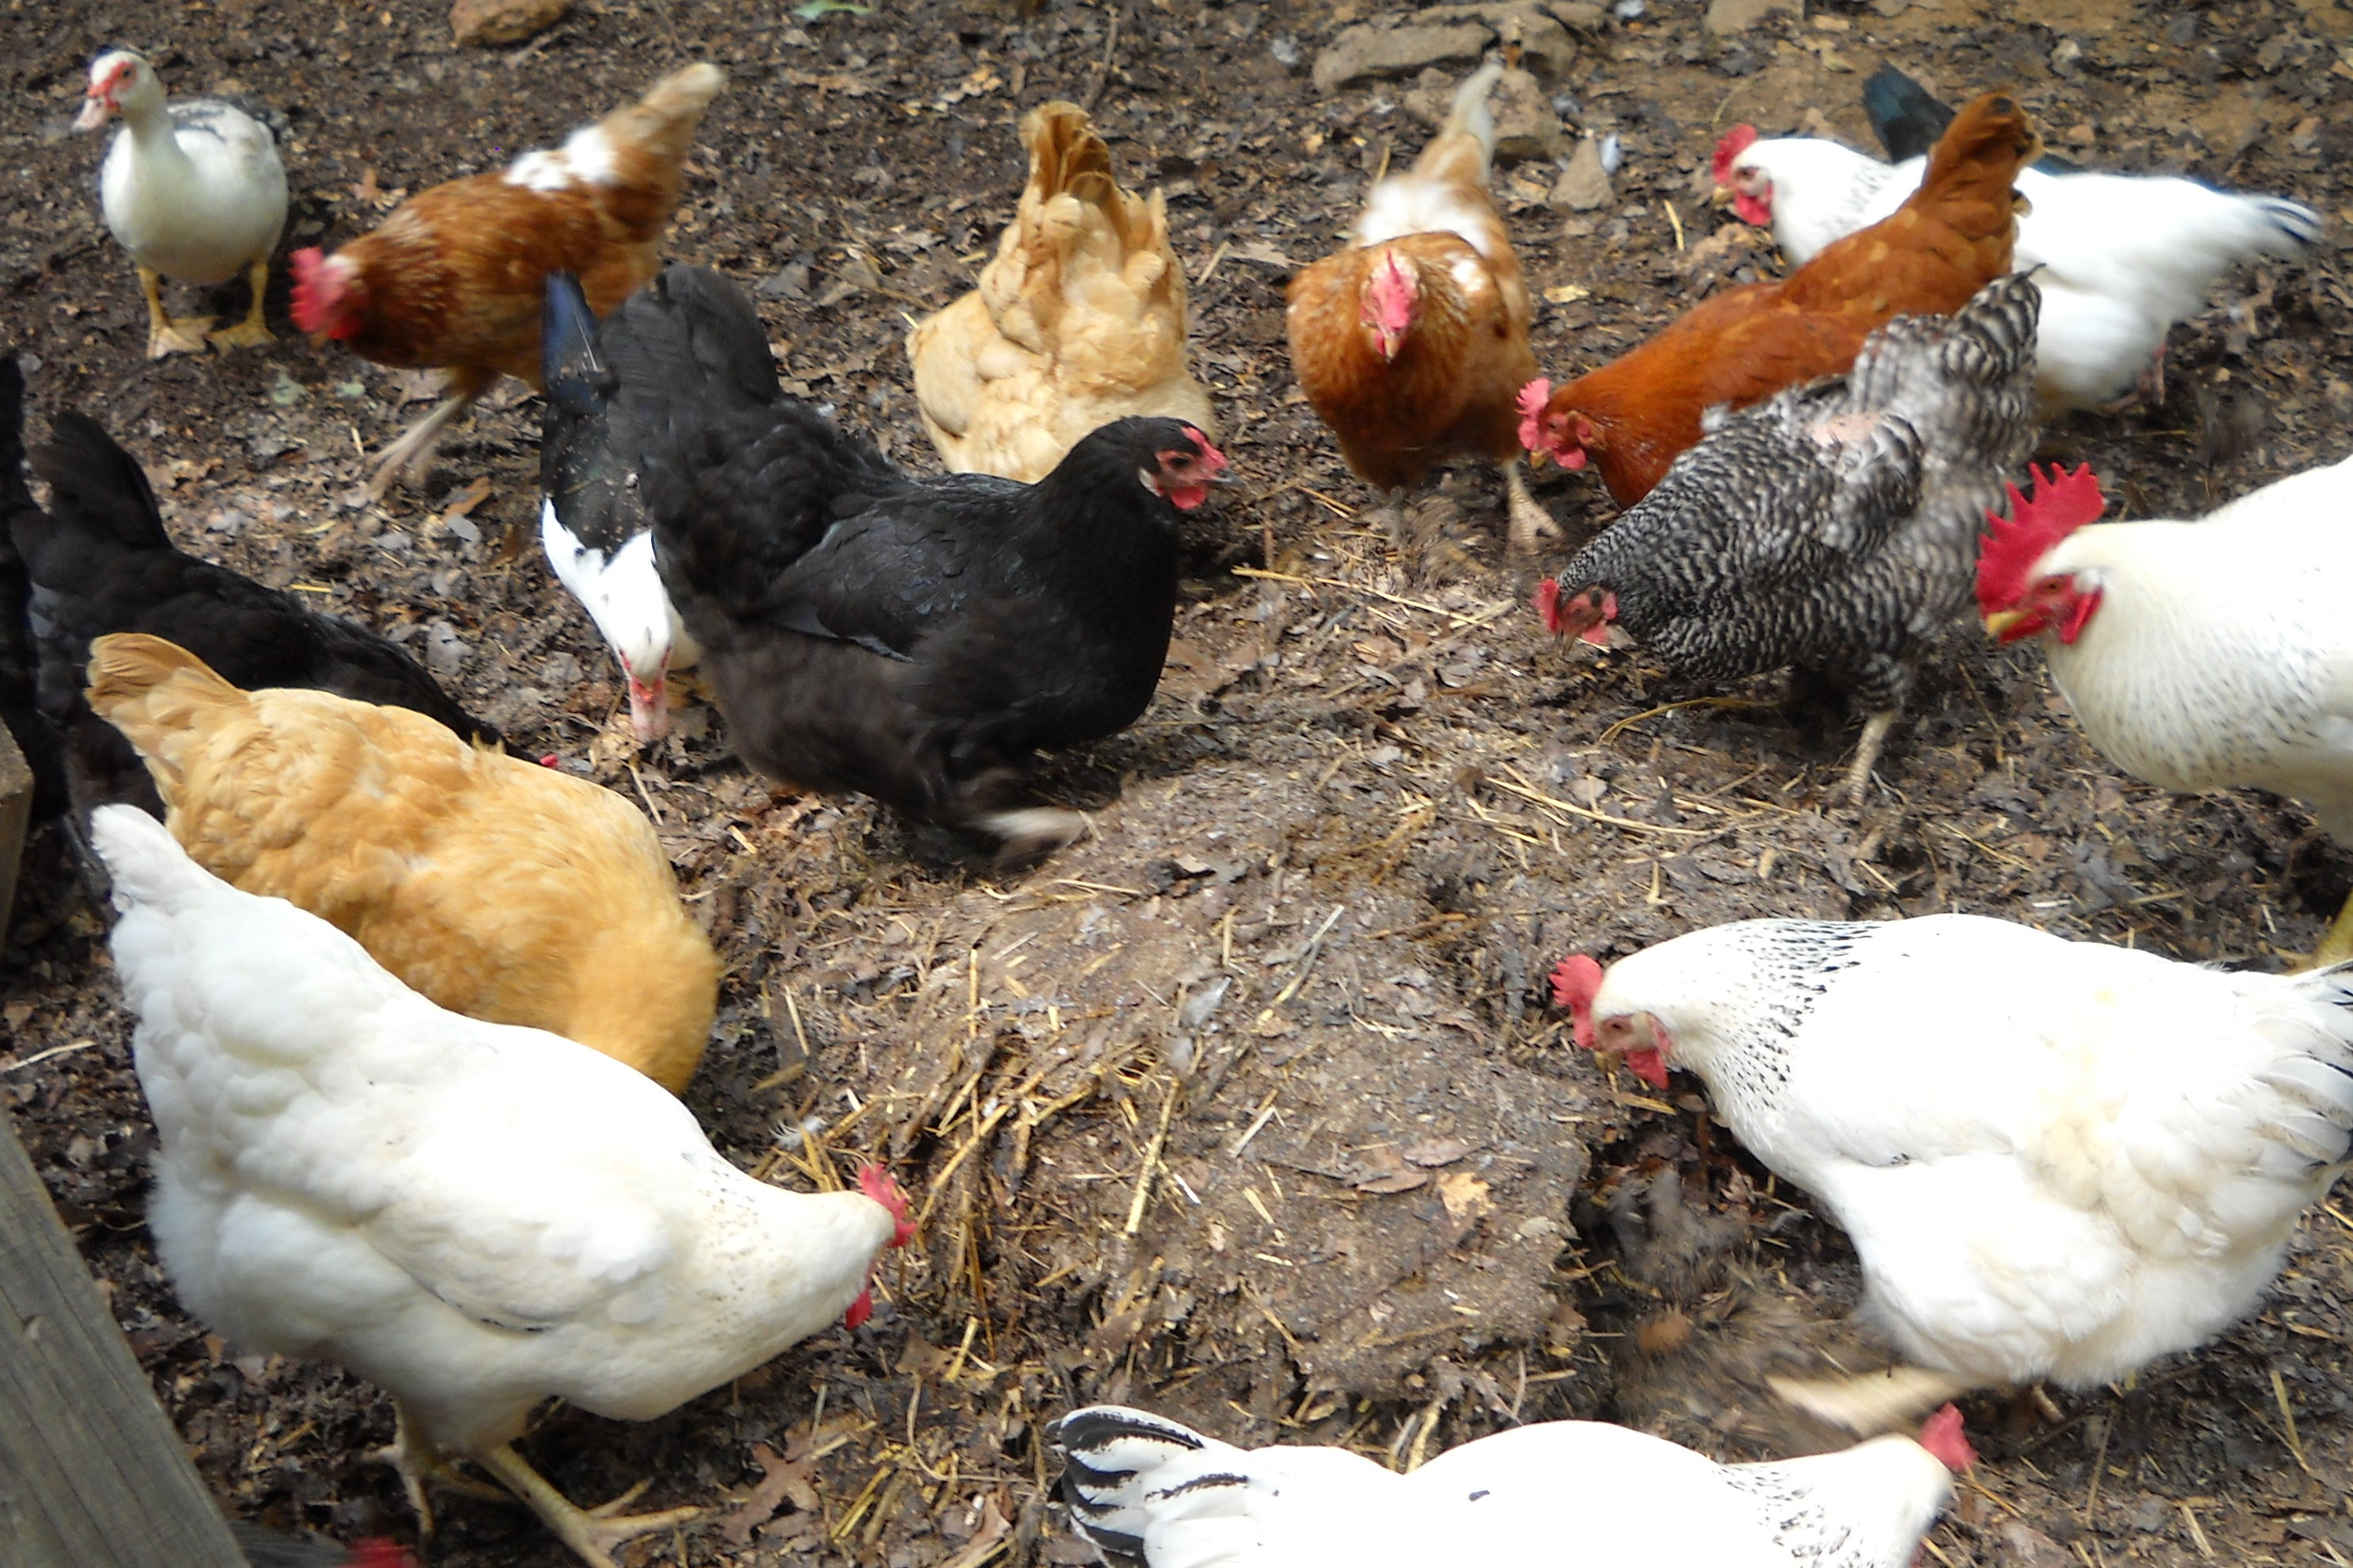 backyard chickens ruffled feathers and spilled milk